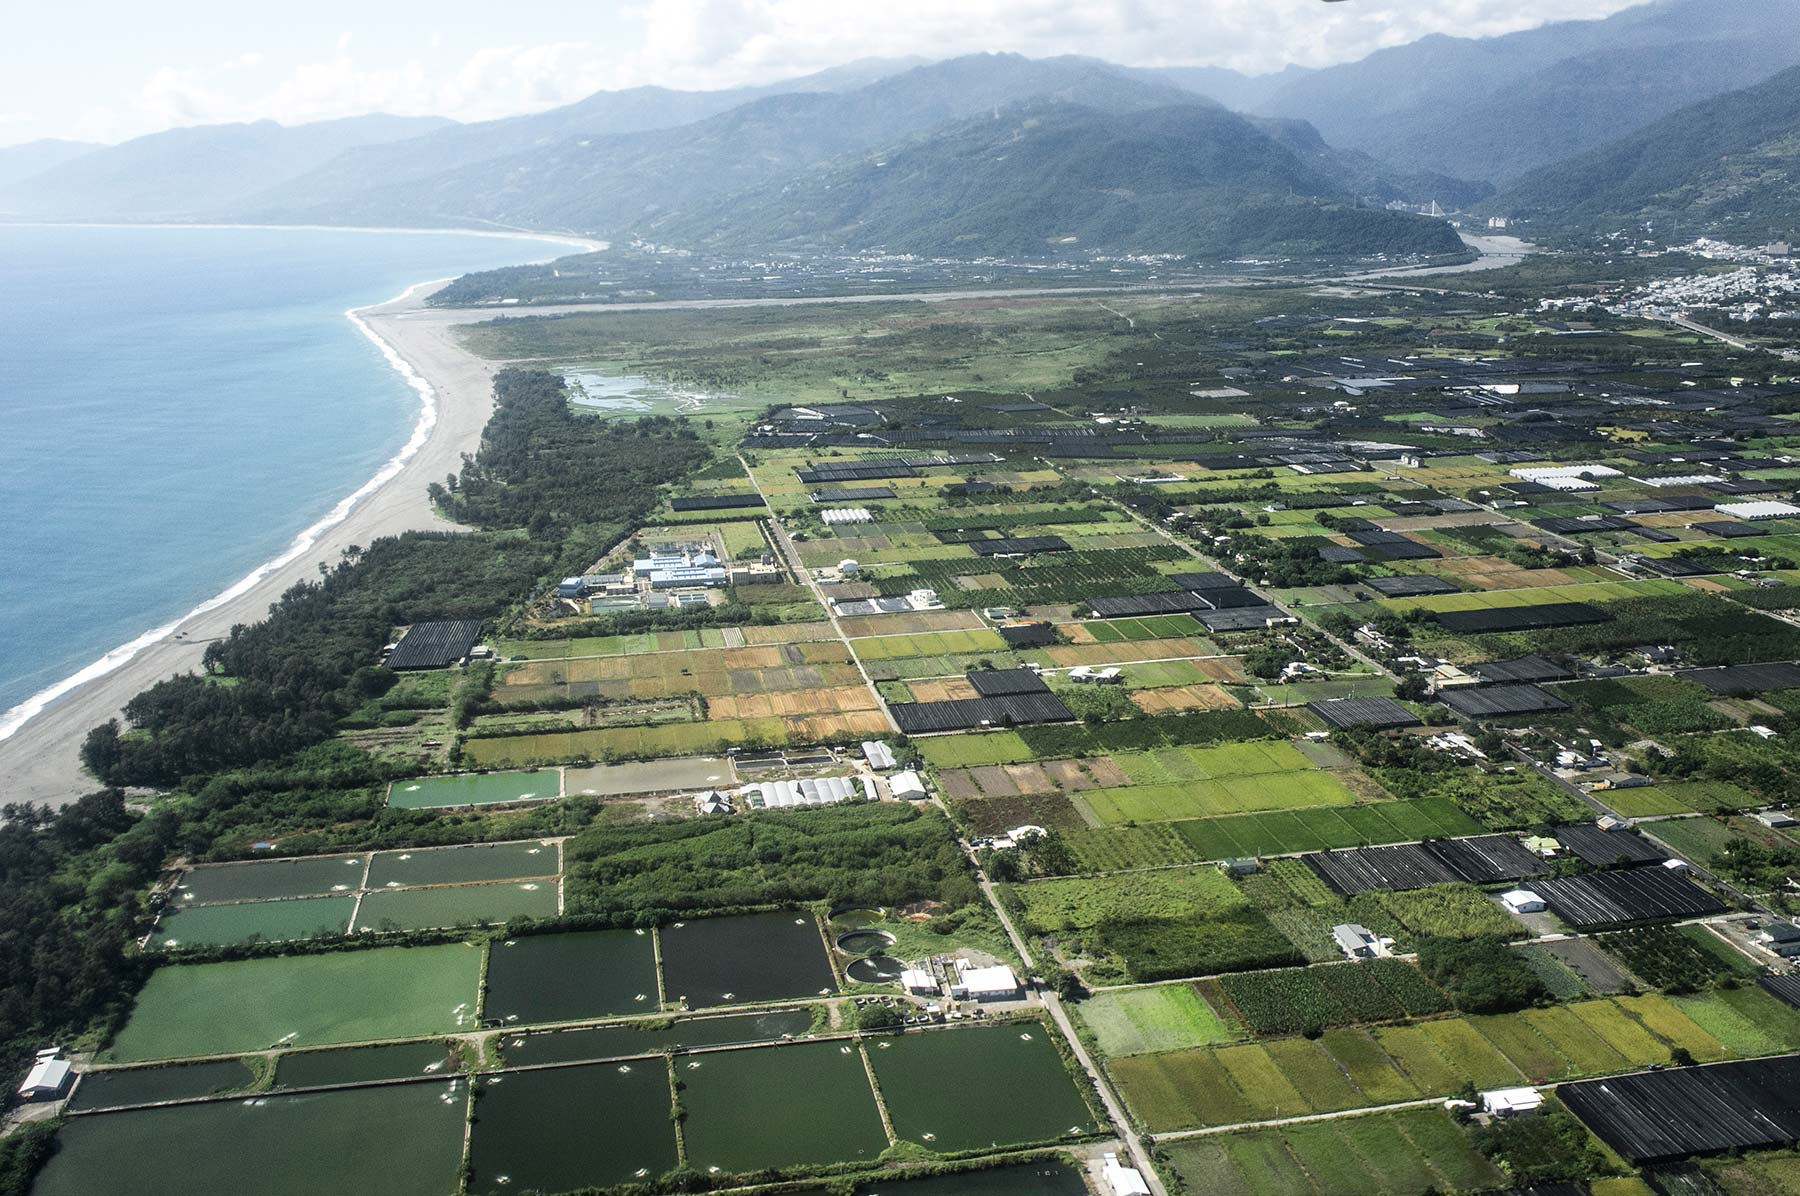 Taitung as viewed from the plane.